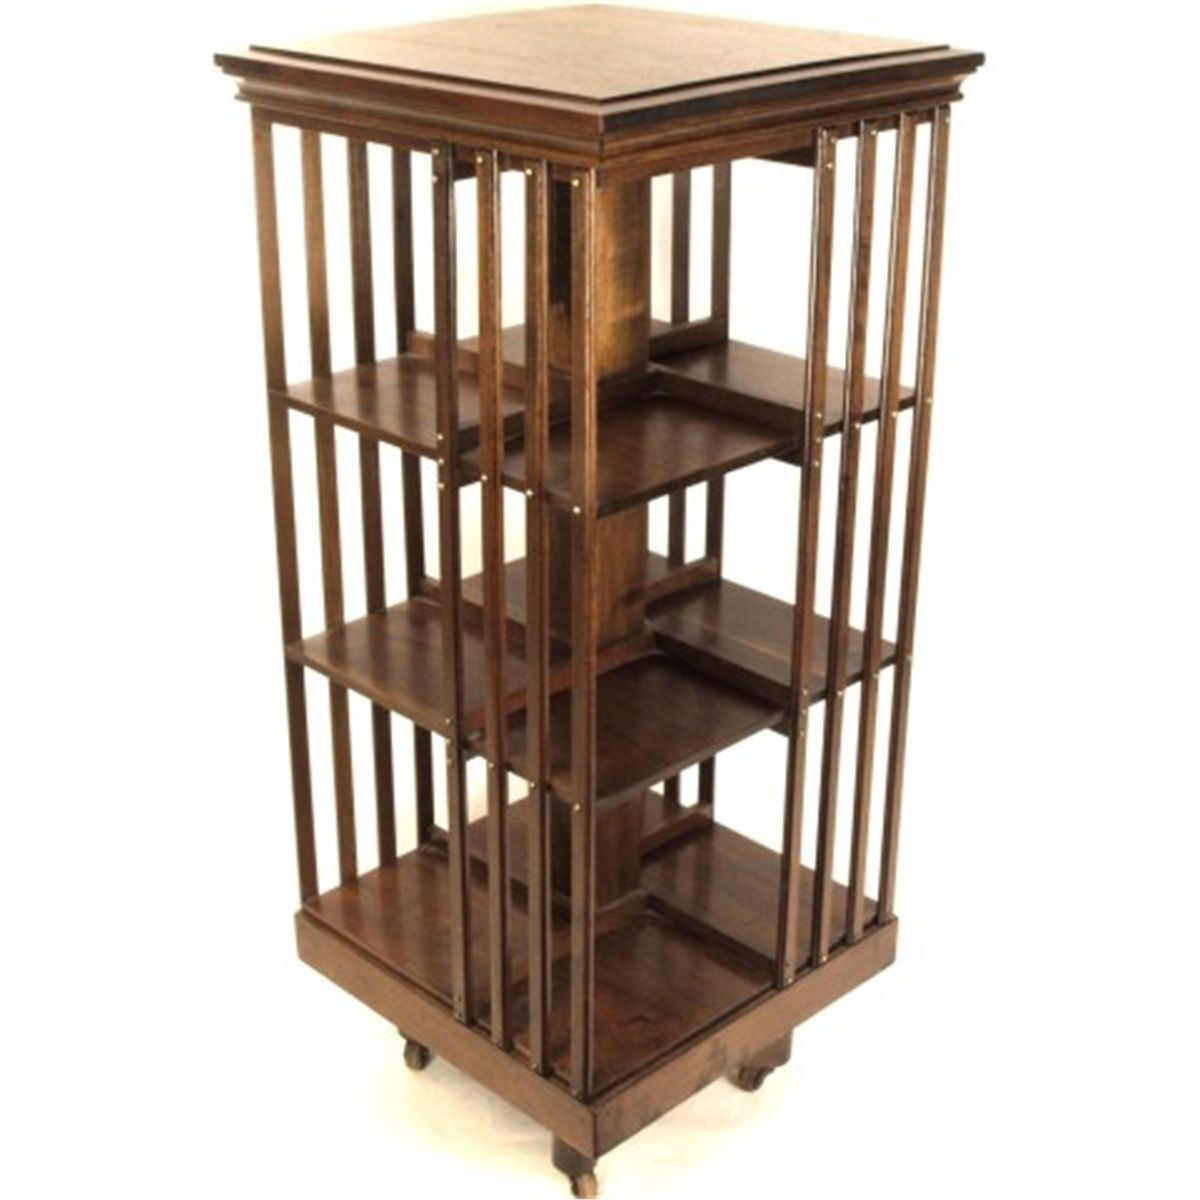 100 Antique Revolving Bookcase For Modern European Furniture Check More At